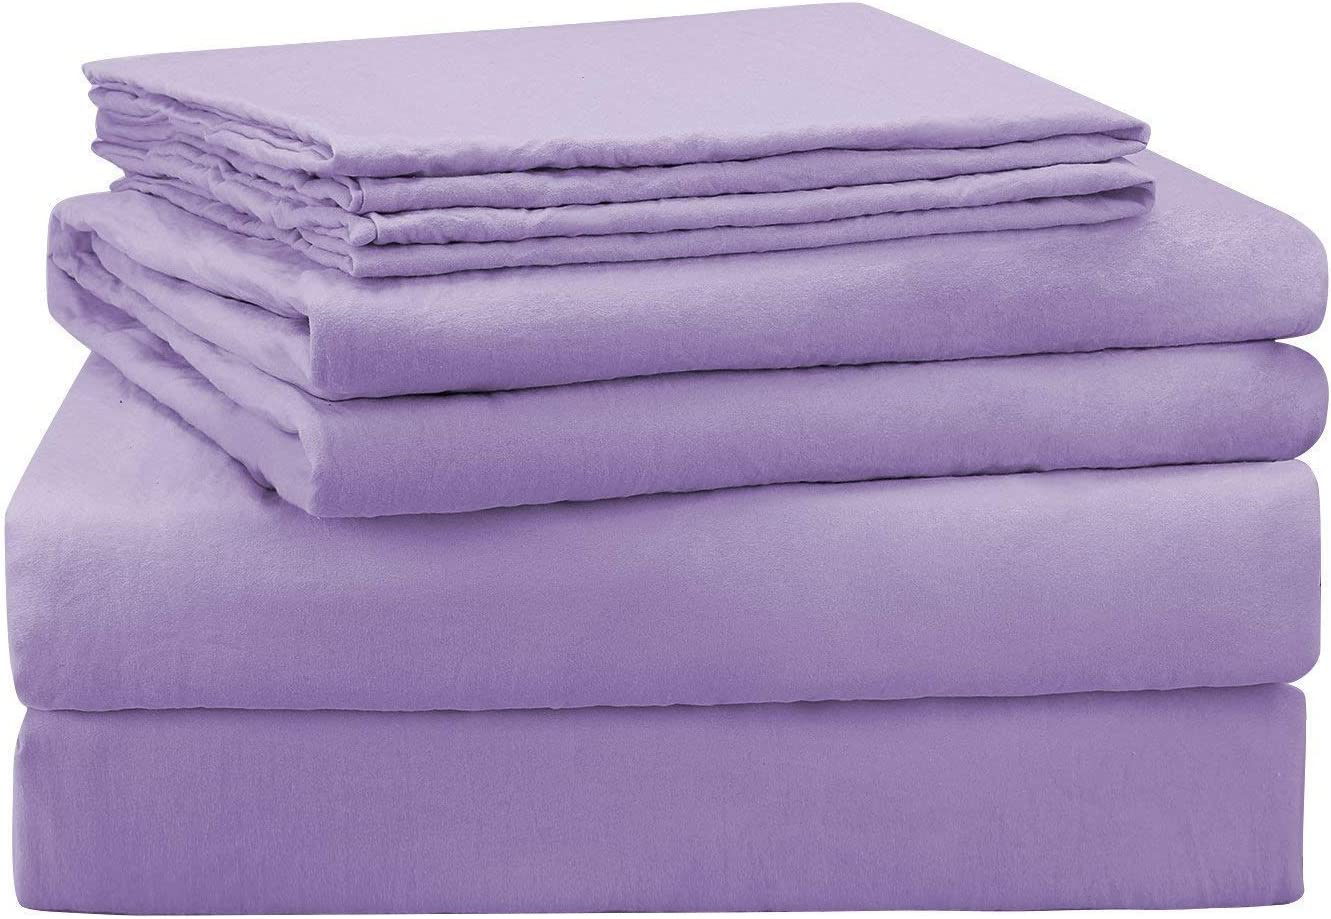 Perfect Fit 1000 Thread Count Heavy Wight Egyptian Cotton Sheet Set Lavender Solid 4 Pieces Olympic Queen Bed Sheets 9 Inches Deep Pocket